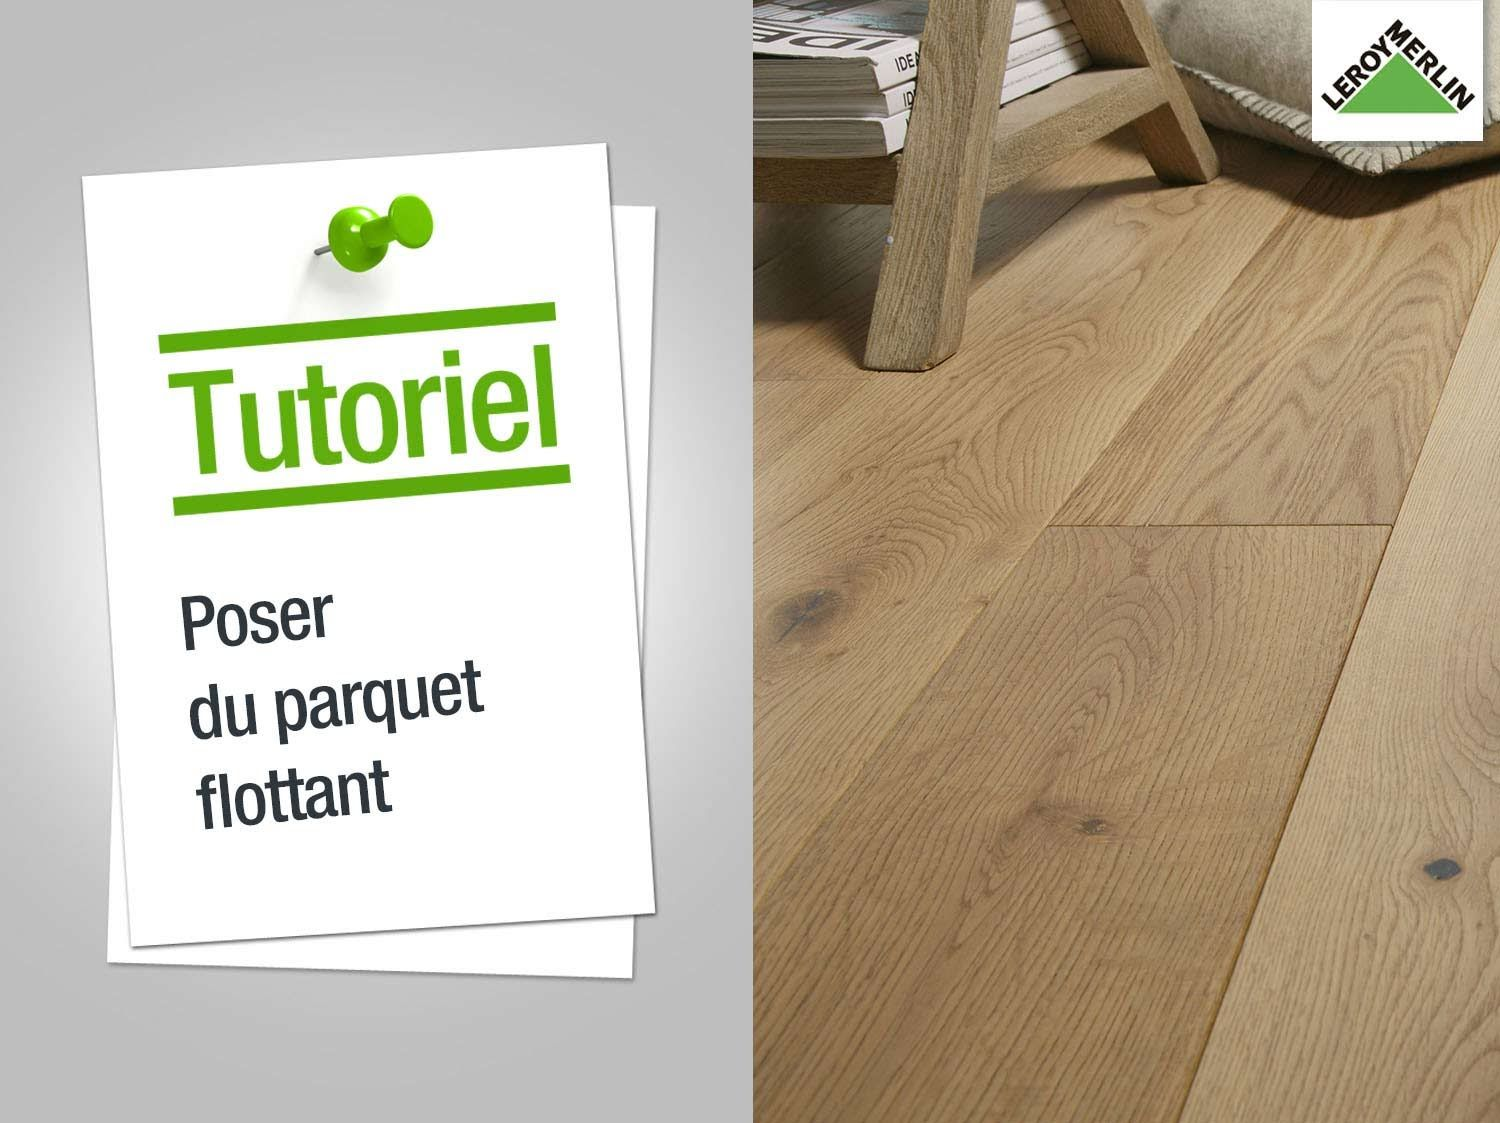 comment poser un parquet flottant leroy merlin maison restaur e pinterest parquet. Black Bedroom Furniture Sets. Home Design Ideas